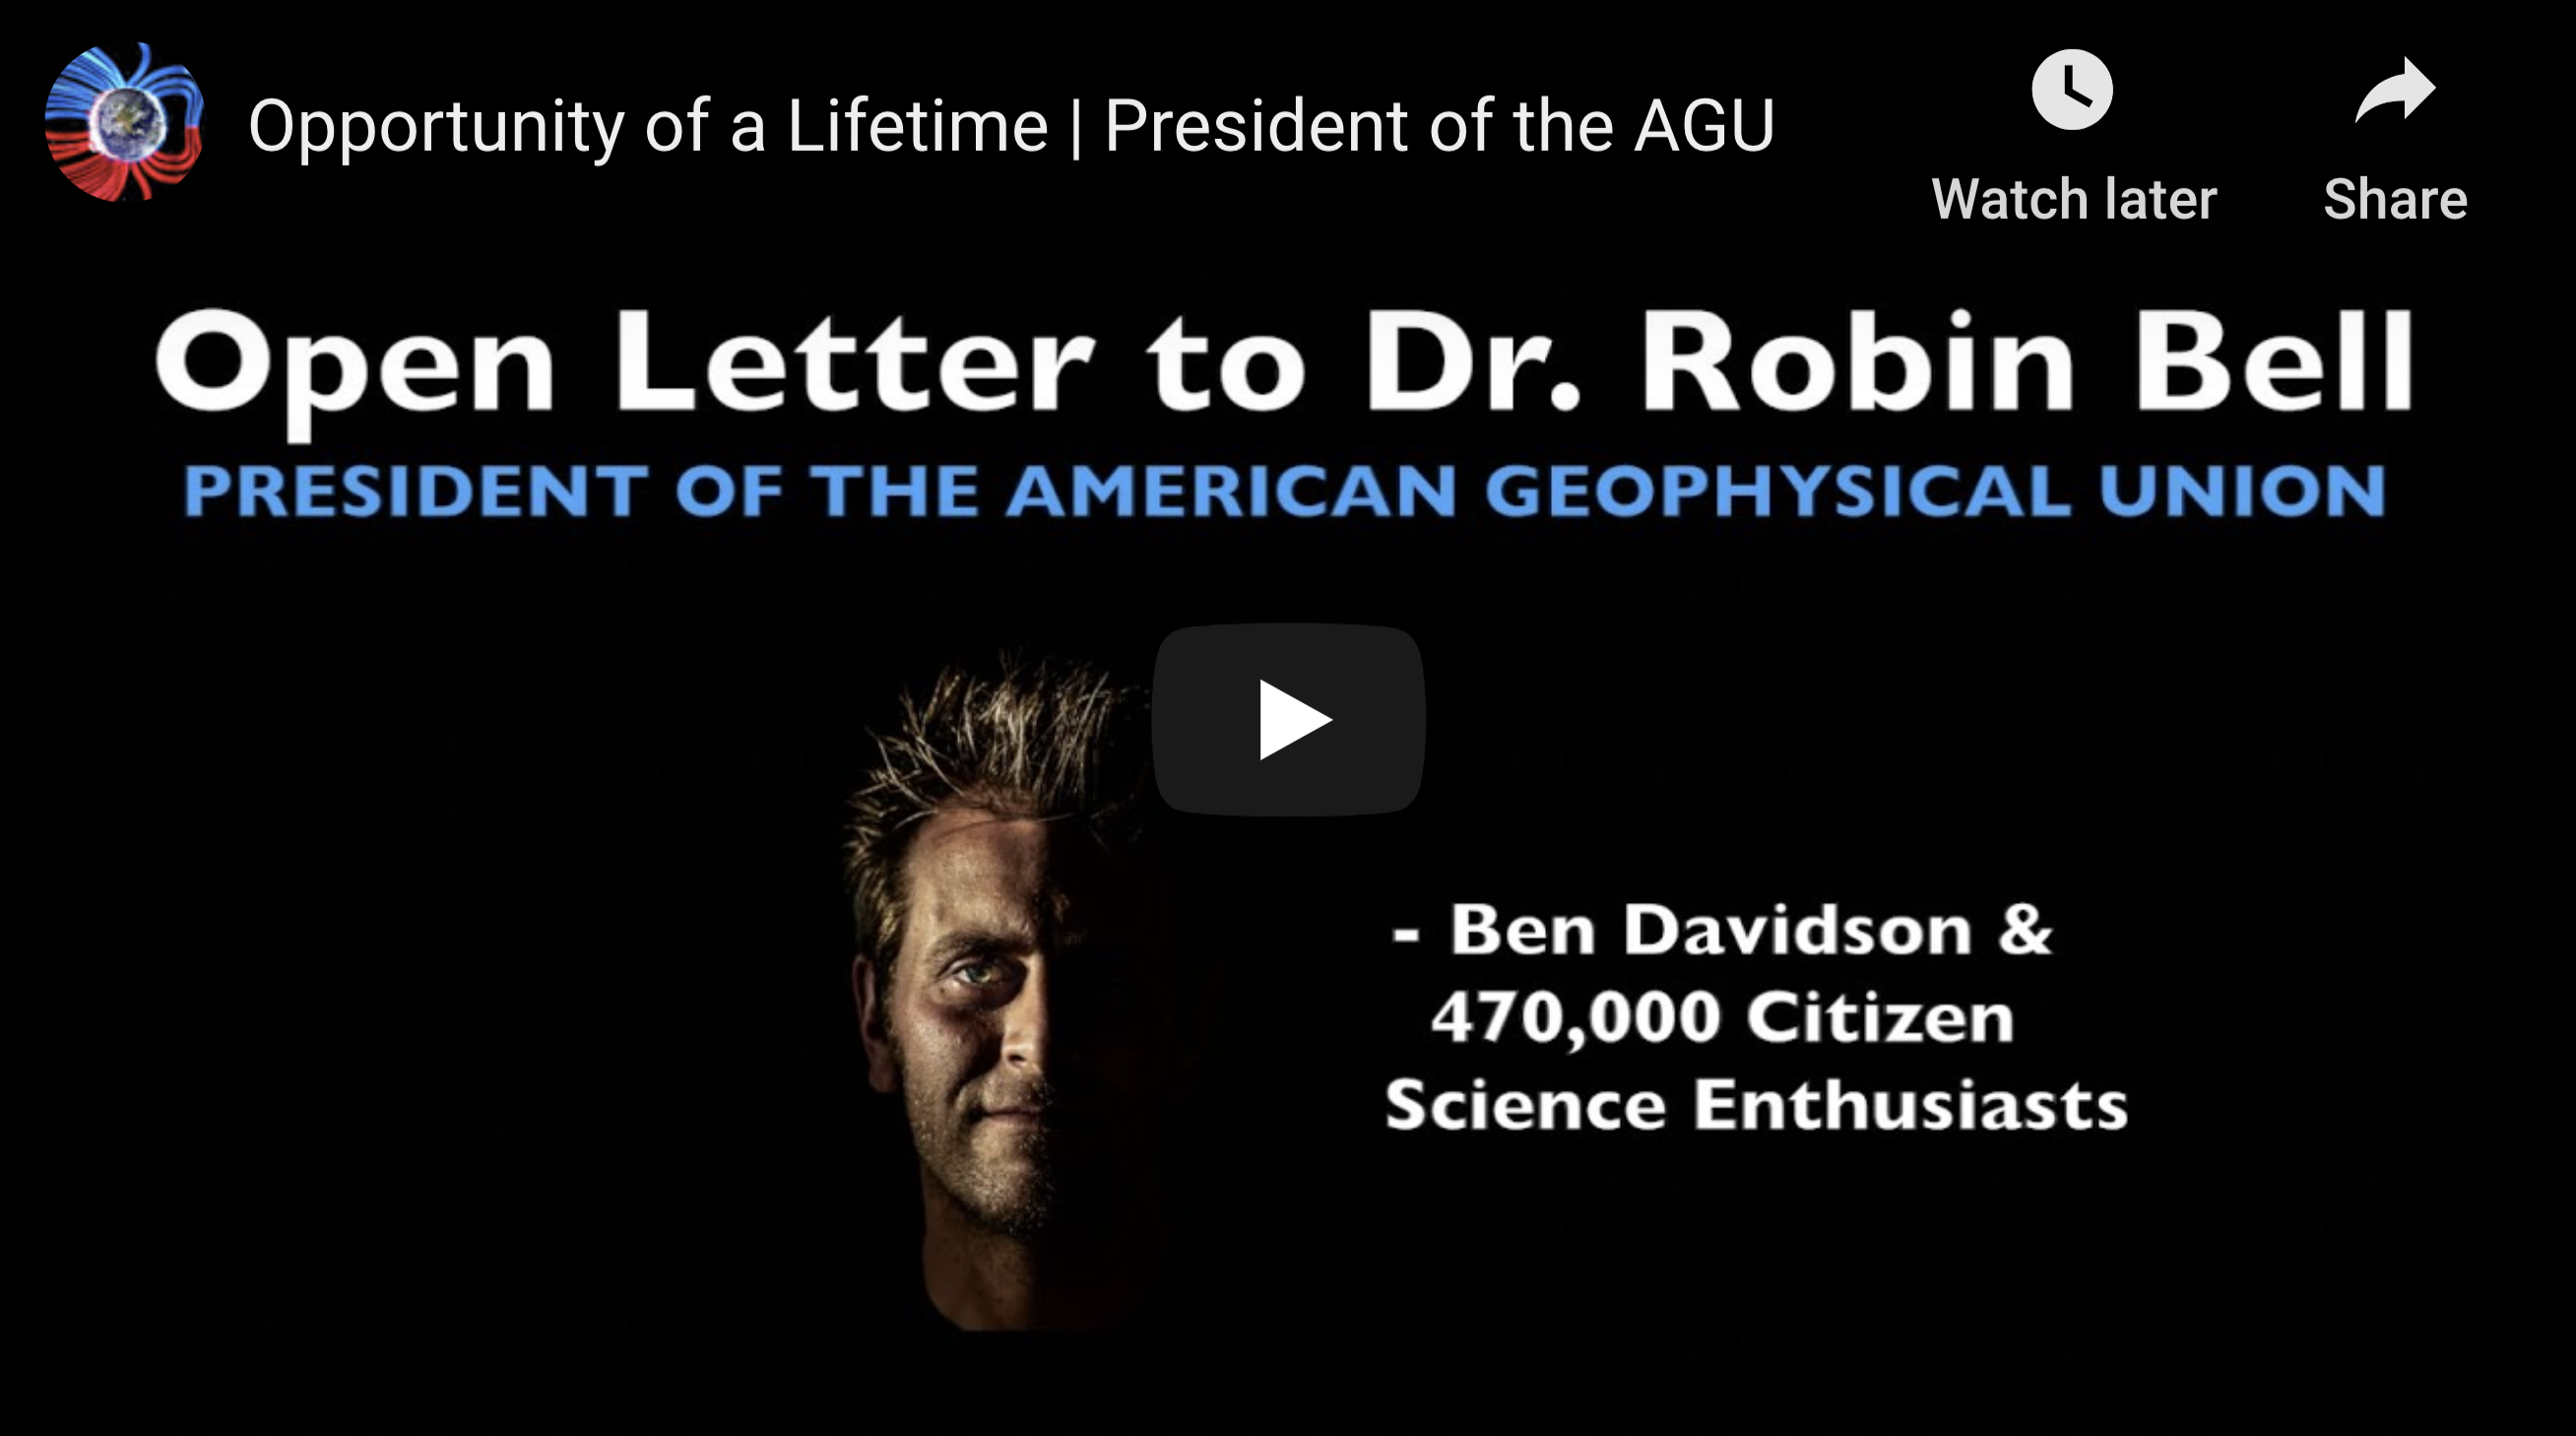 Opportunity of a Lifetime President of the AGU 6 22 2020